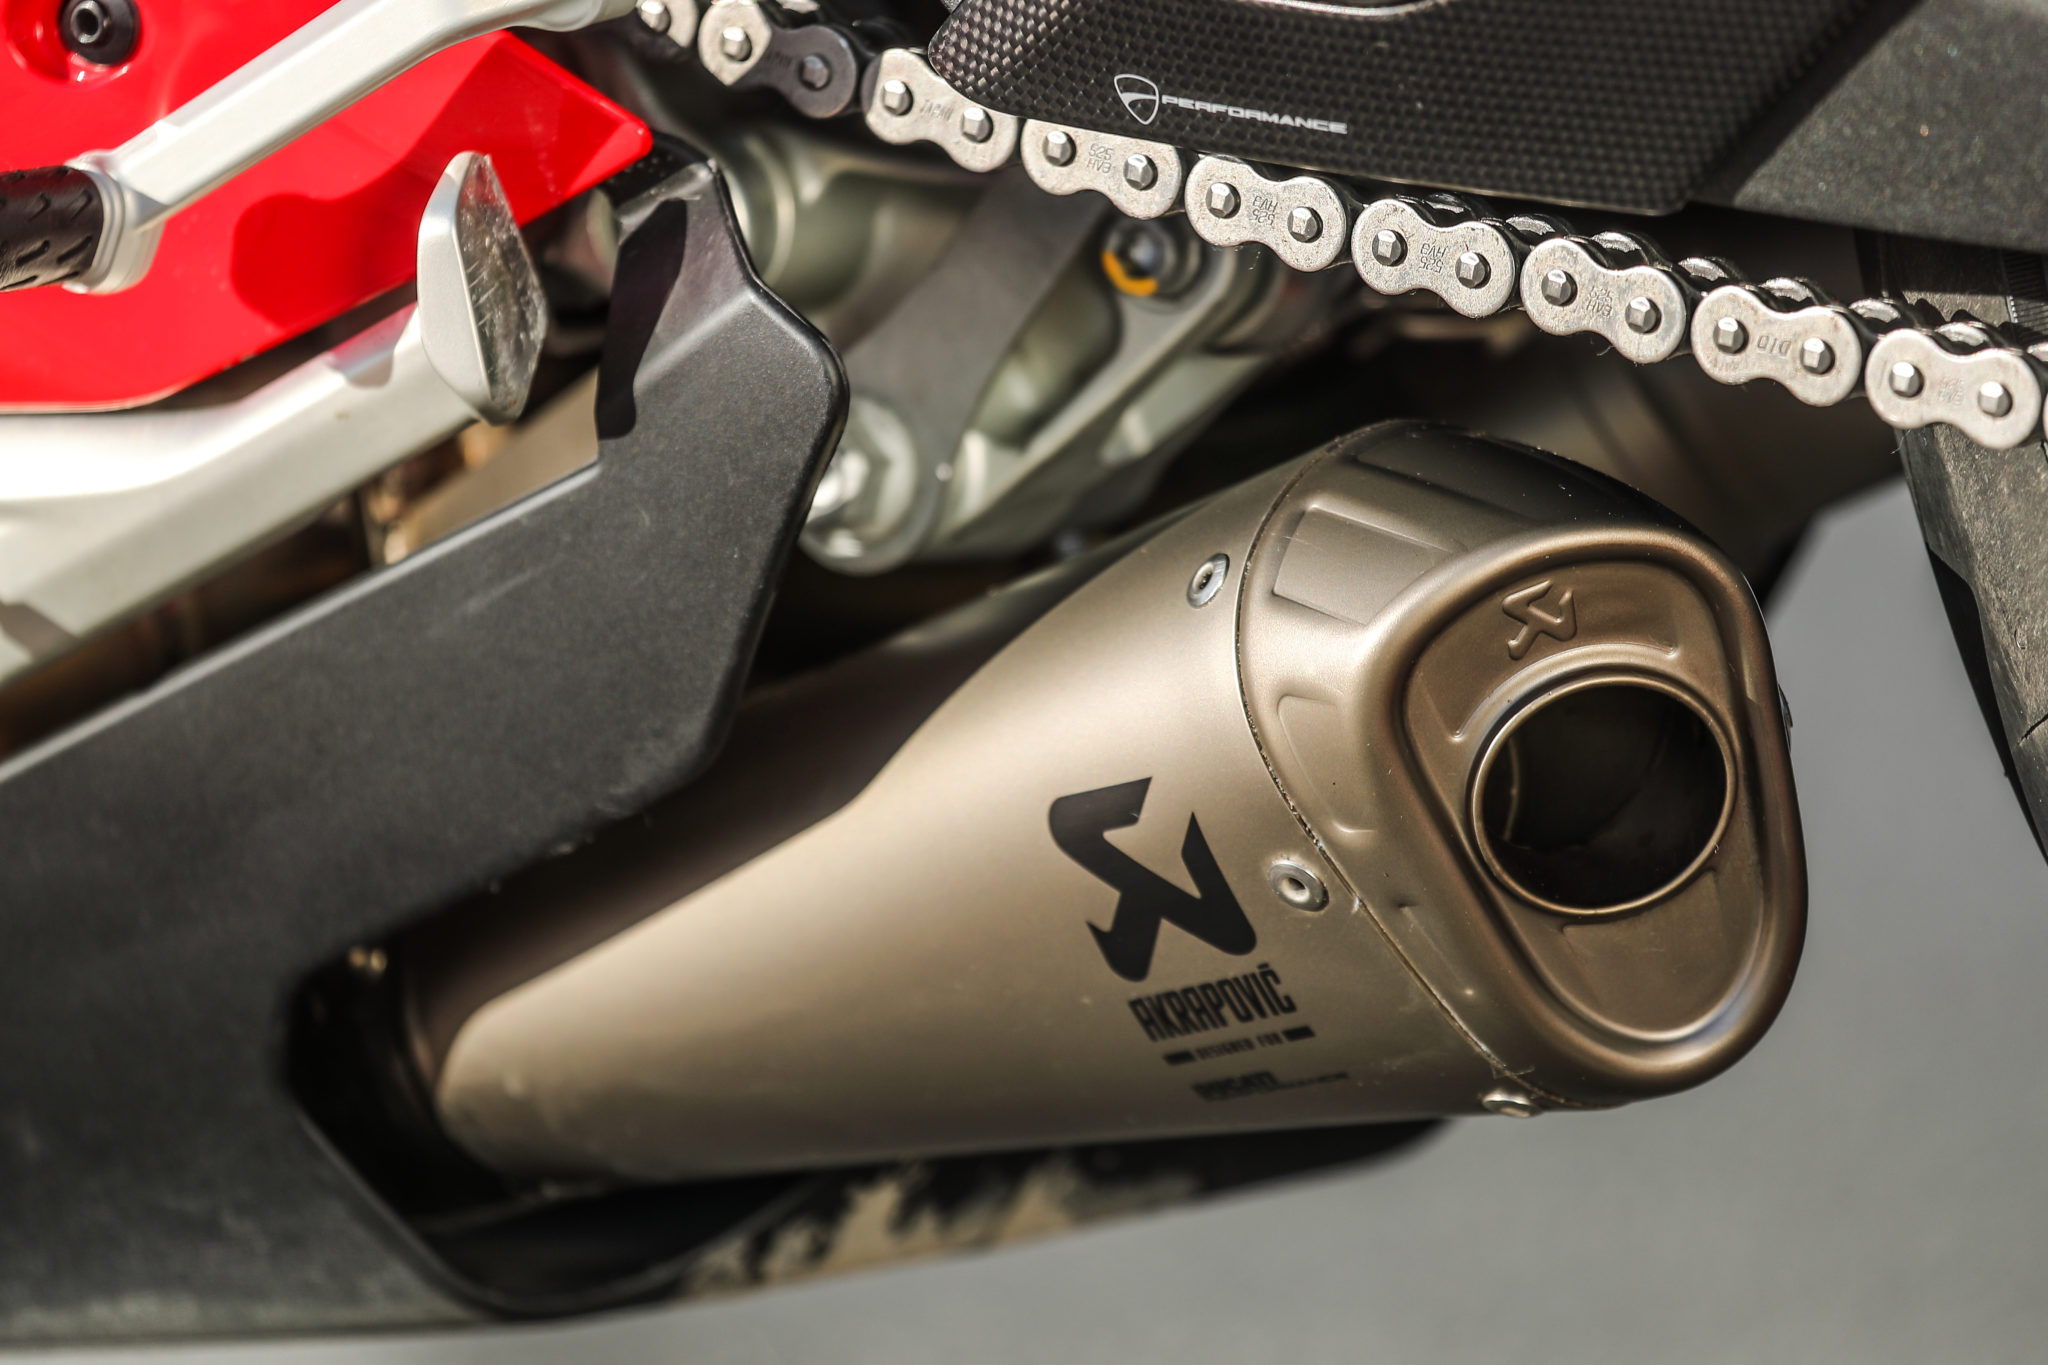 PANIGALE V4 S PERFORMANCE 11